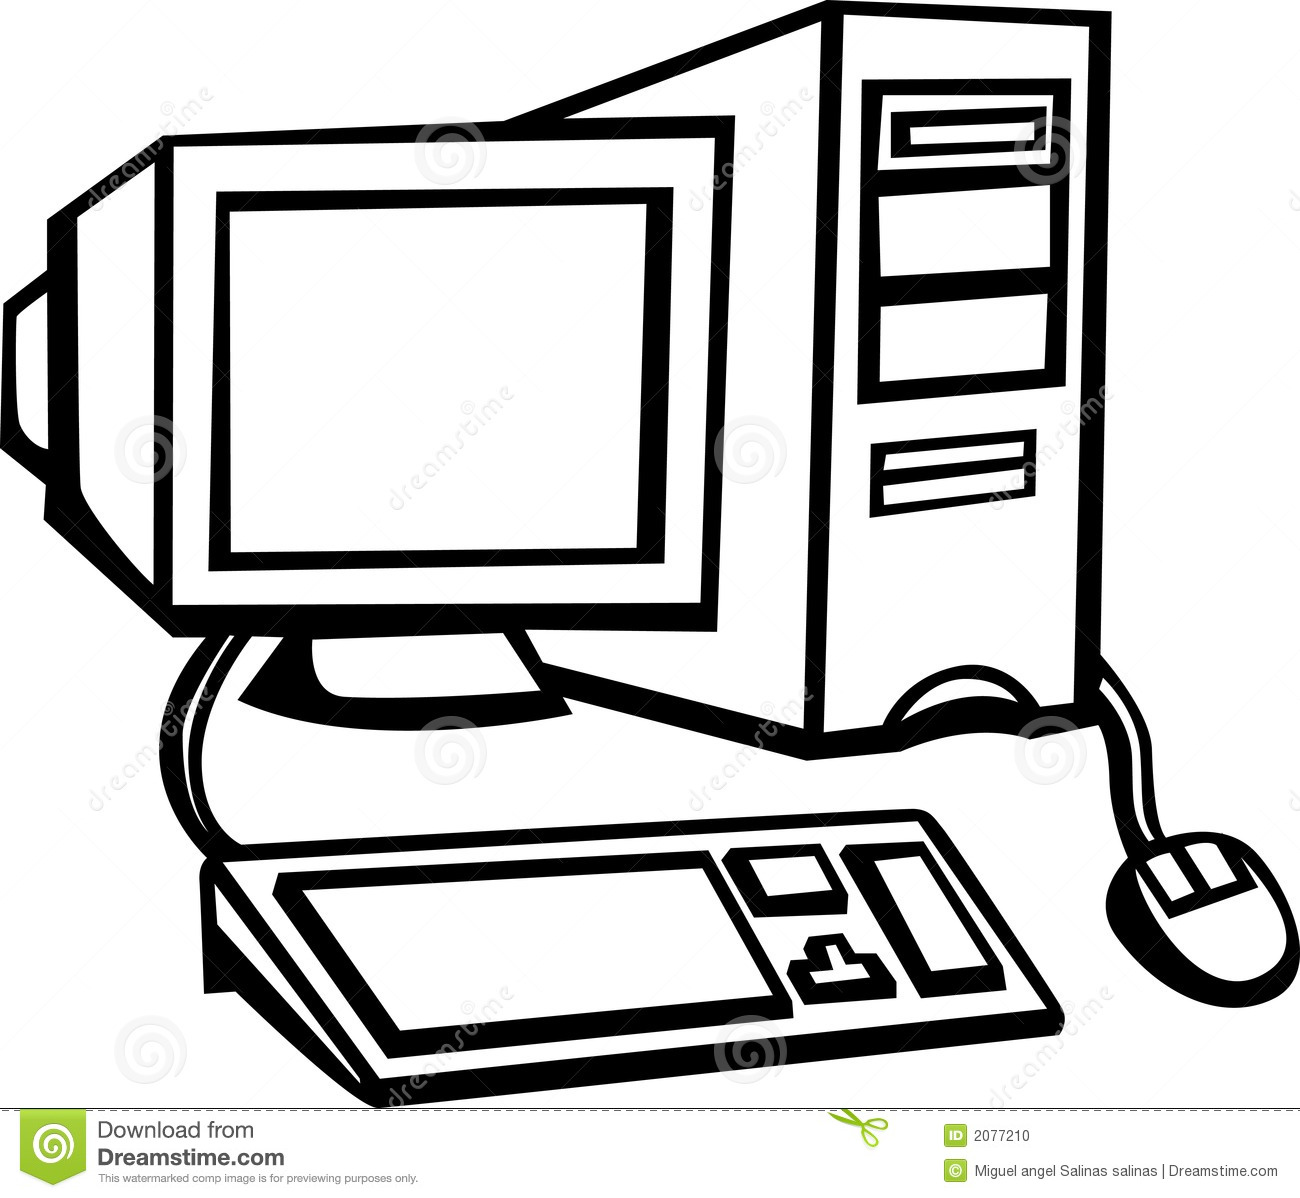 computer system clipart